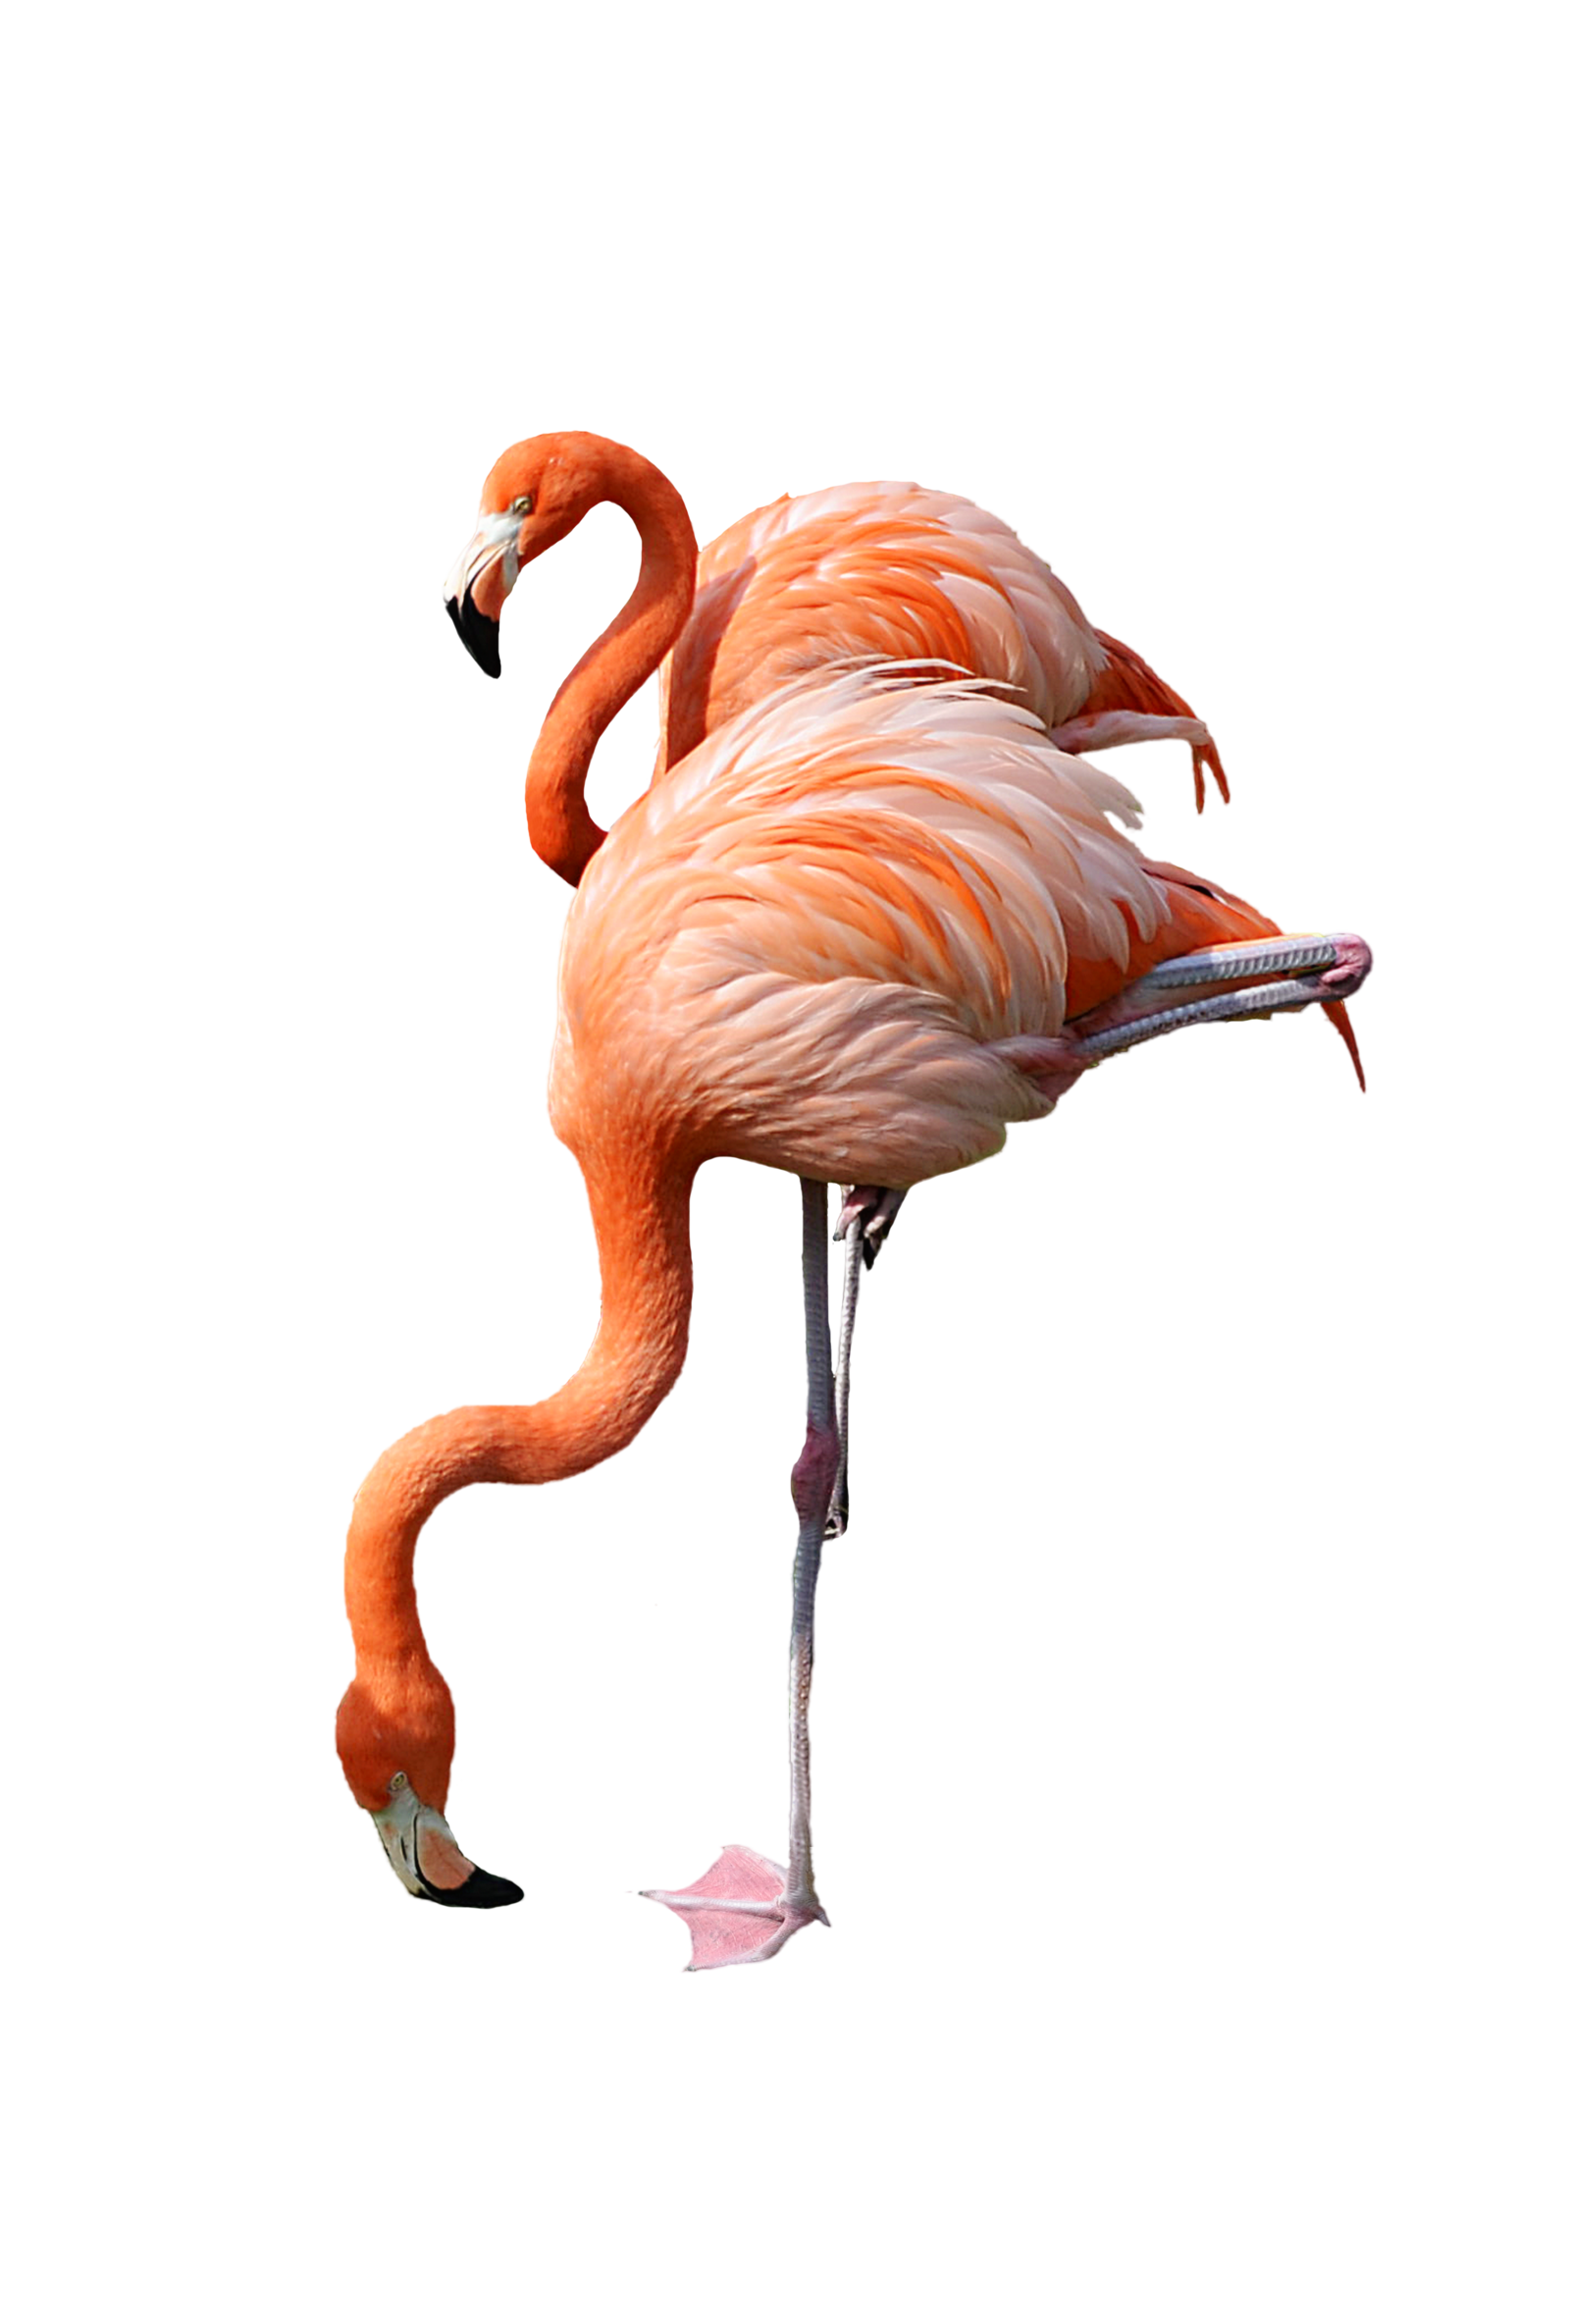 Foot clipart flamingo. Png images free download